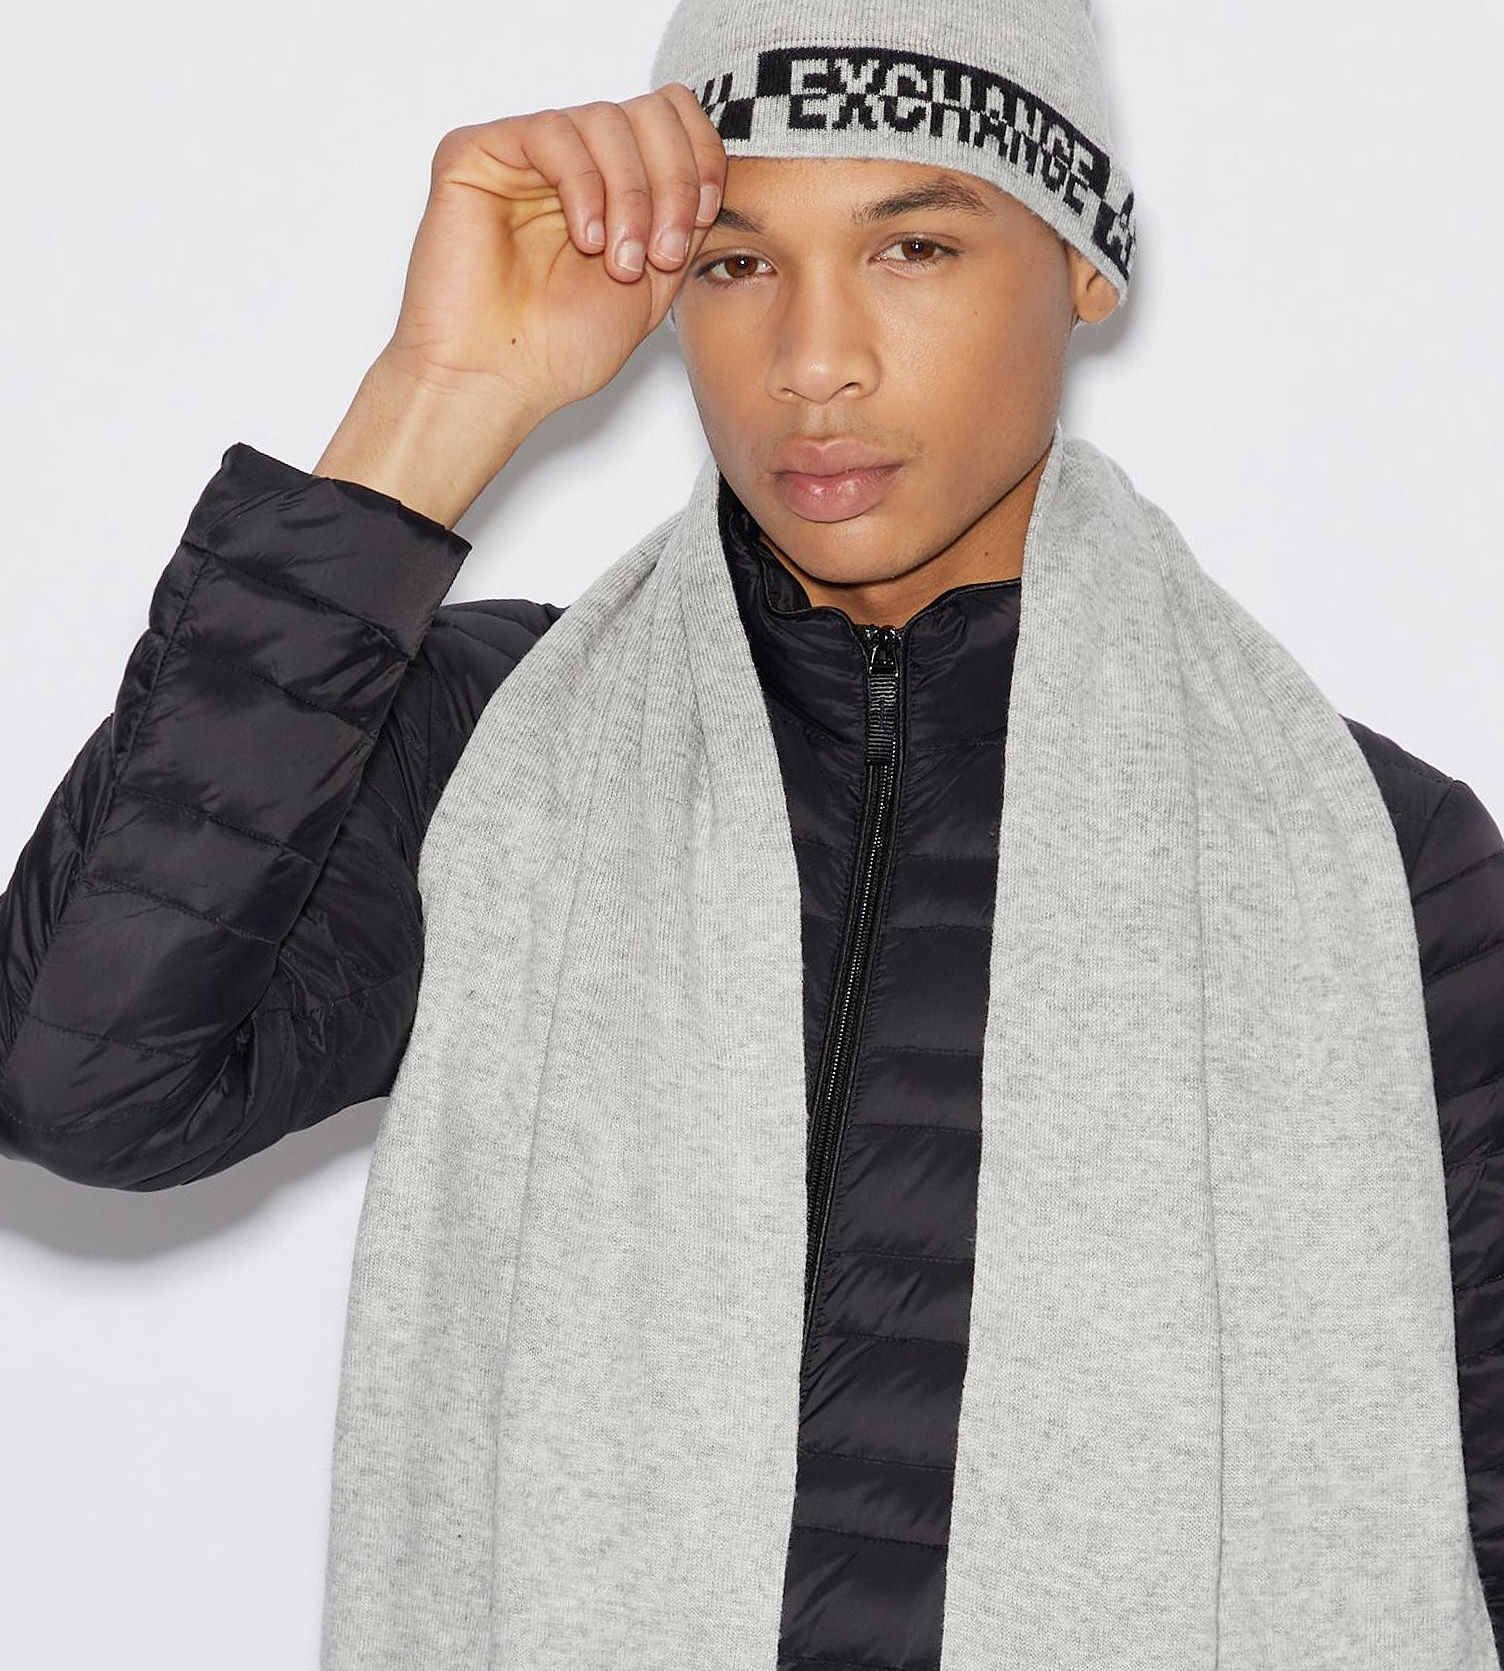 AX men model wearing logoed beanie and scarf